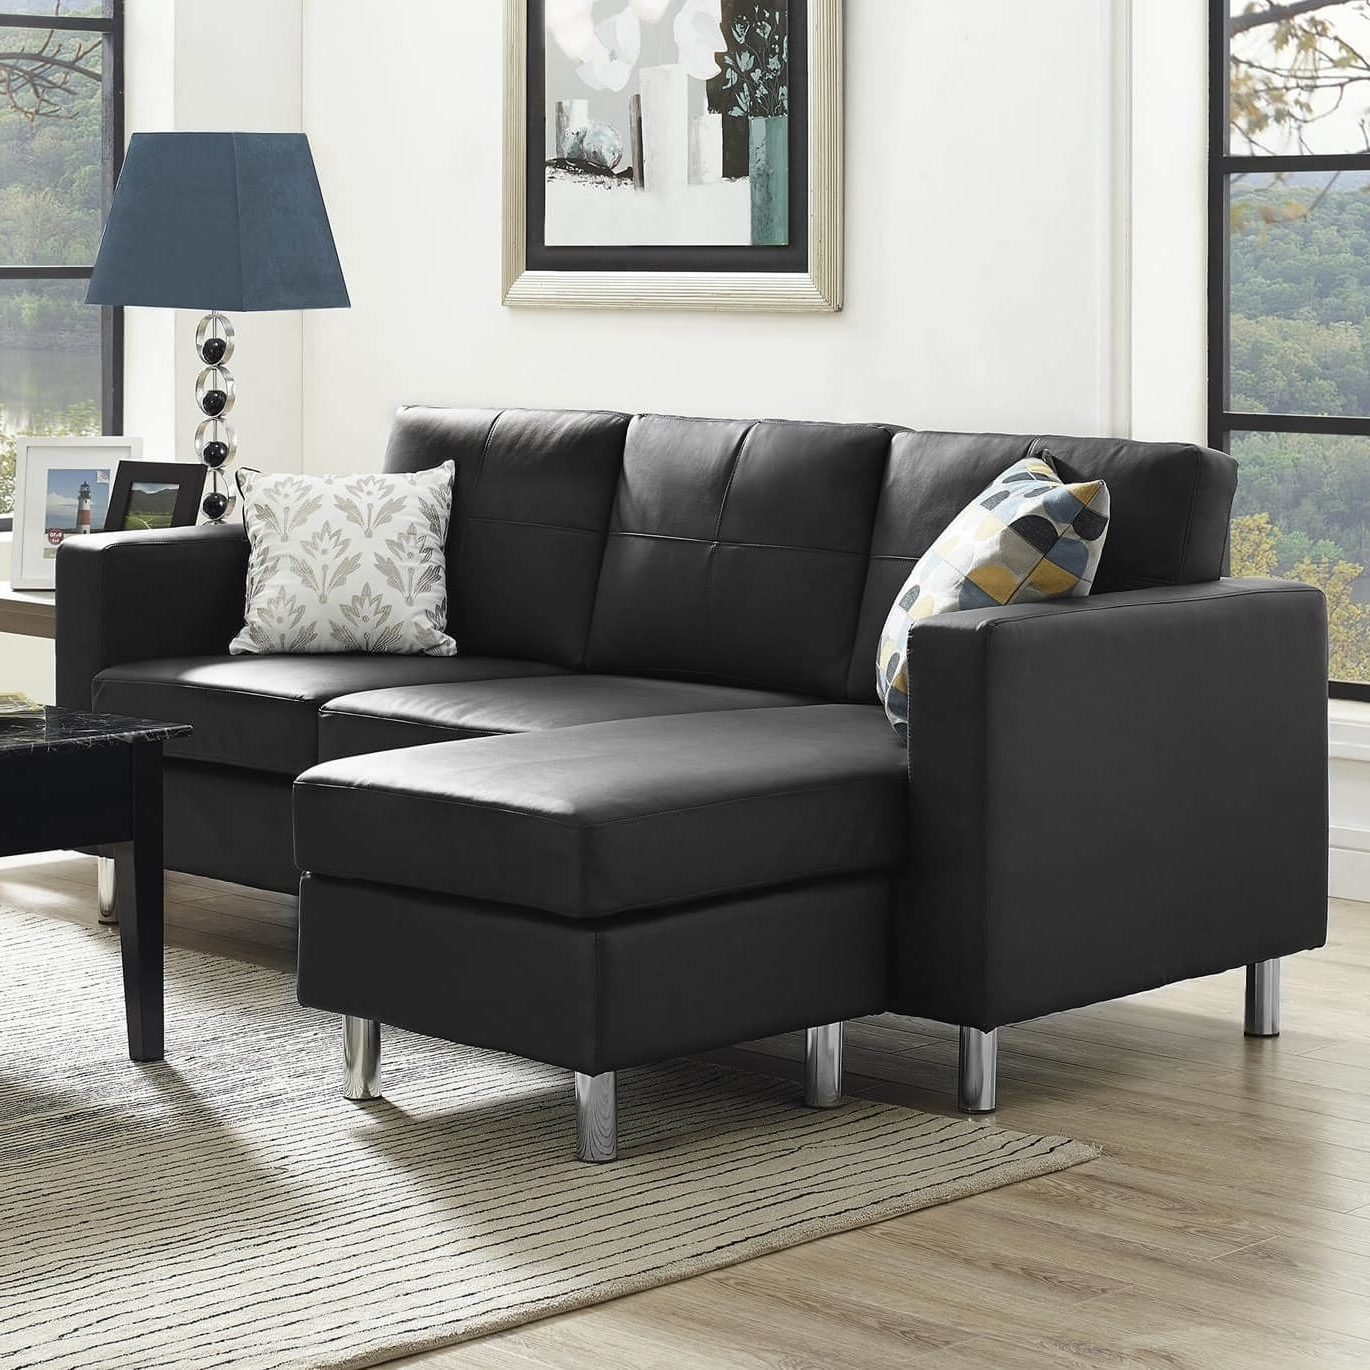 Most Recent Sectional Sofas Under 500 Within 40 Cheap Sectional Sofas Under $500 For  (View 4 of 15)